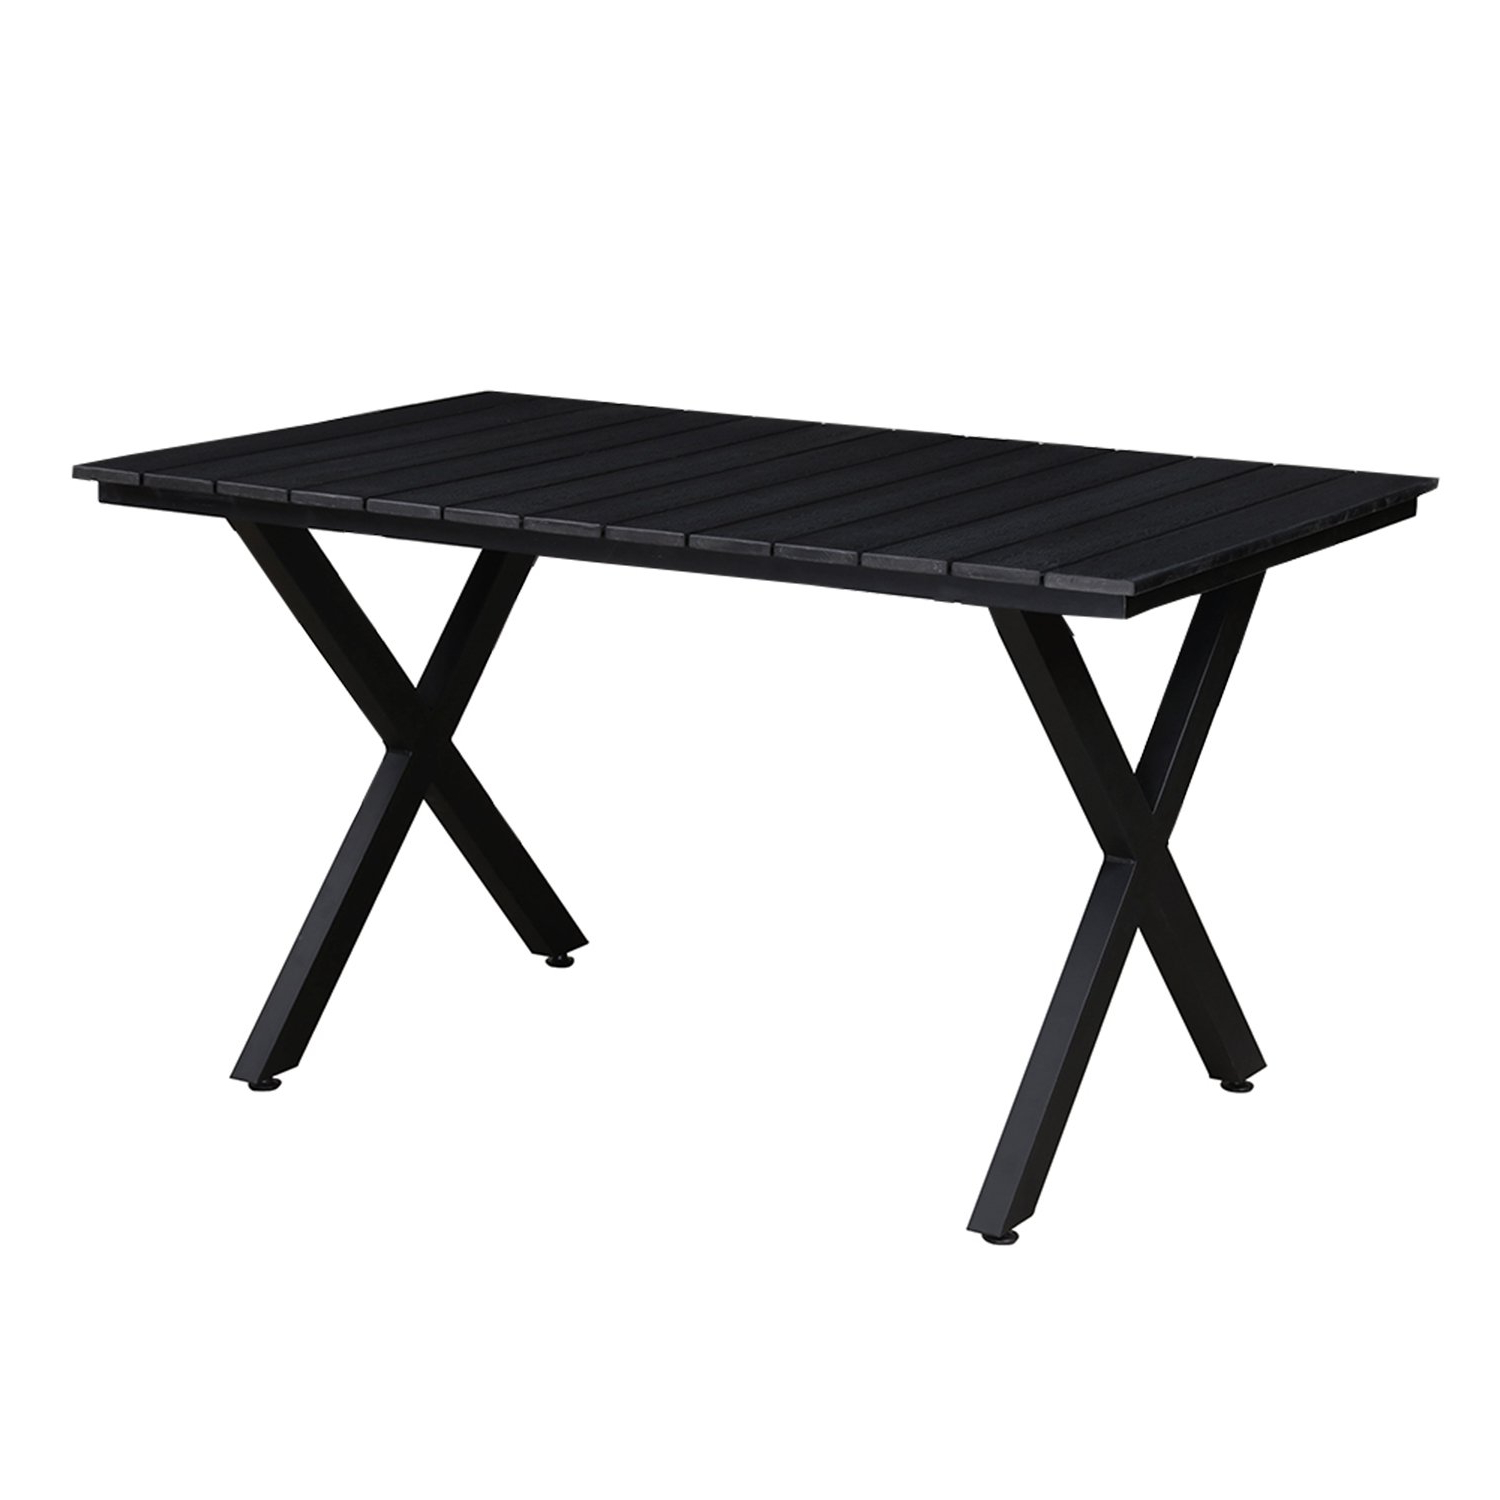 Well Liked Contemporary Rectangular Dining Tables Inside Amazon : Oakland Living Az902 Table Bk Modern Outdoor (View 23 of 25)